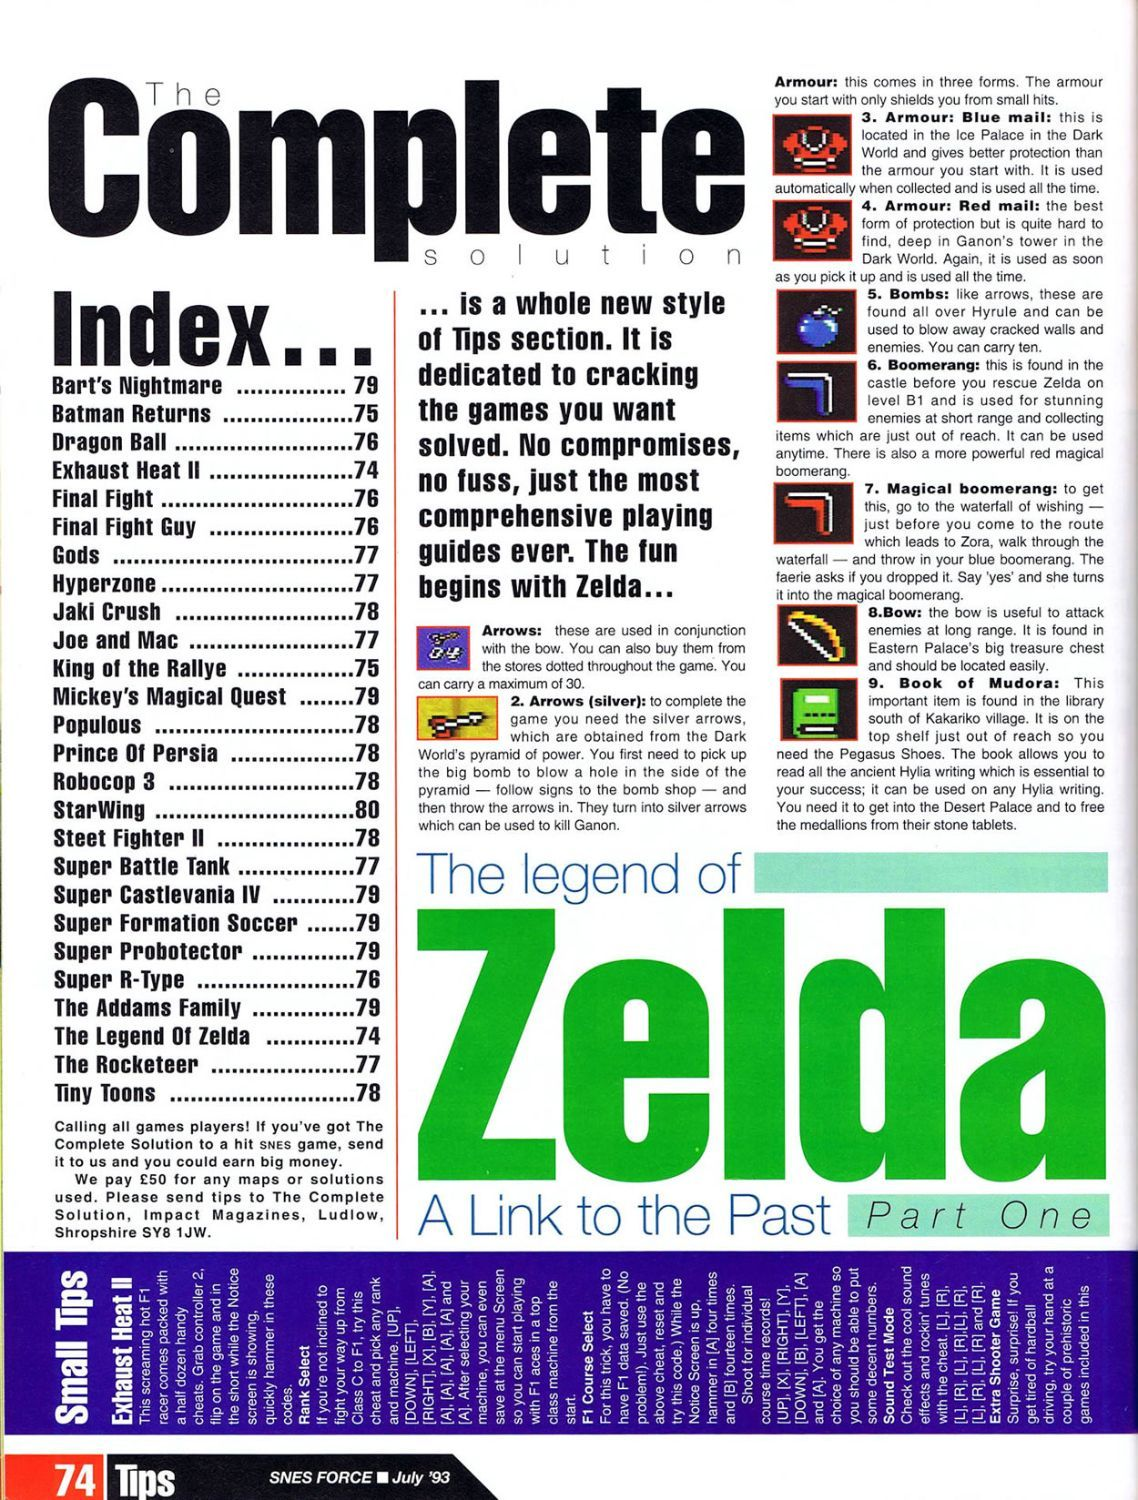 snes force issue 1 july 1993 tloz a link to the past guide part 1 rh pinterest com Smiler Scan game guide pdf scans